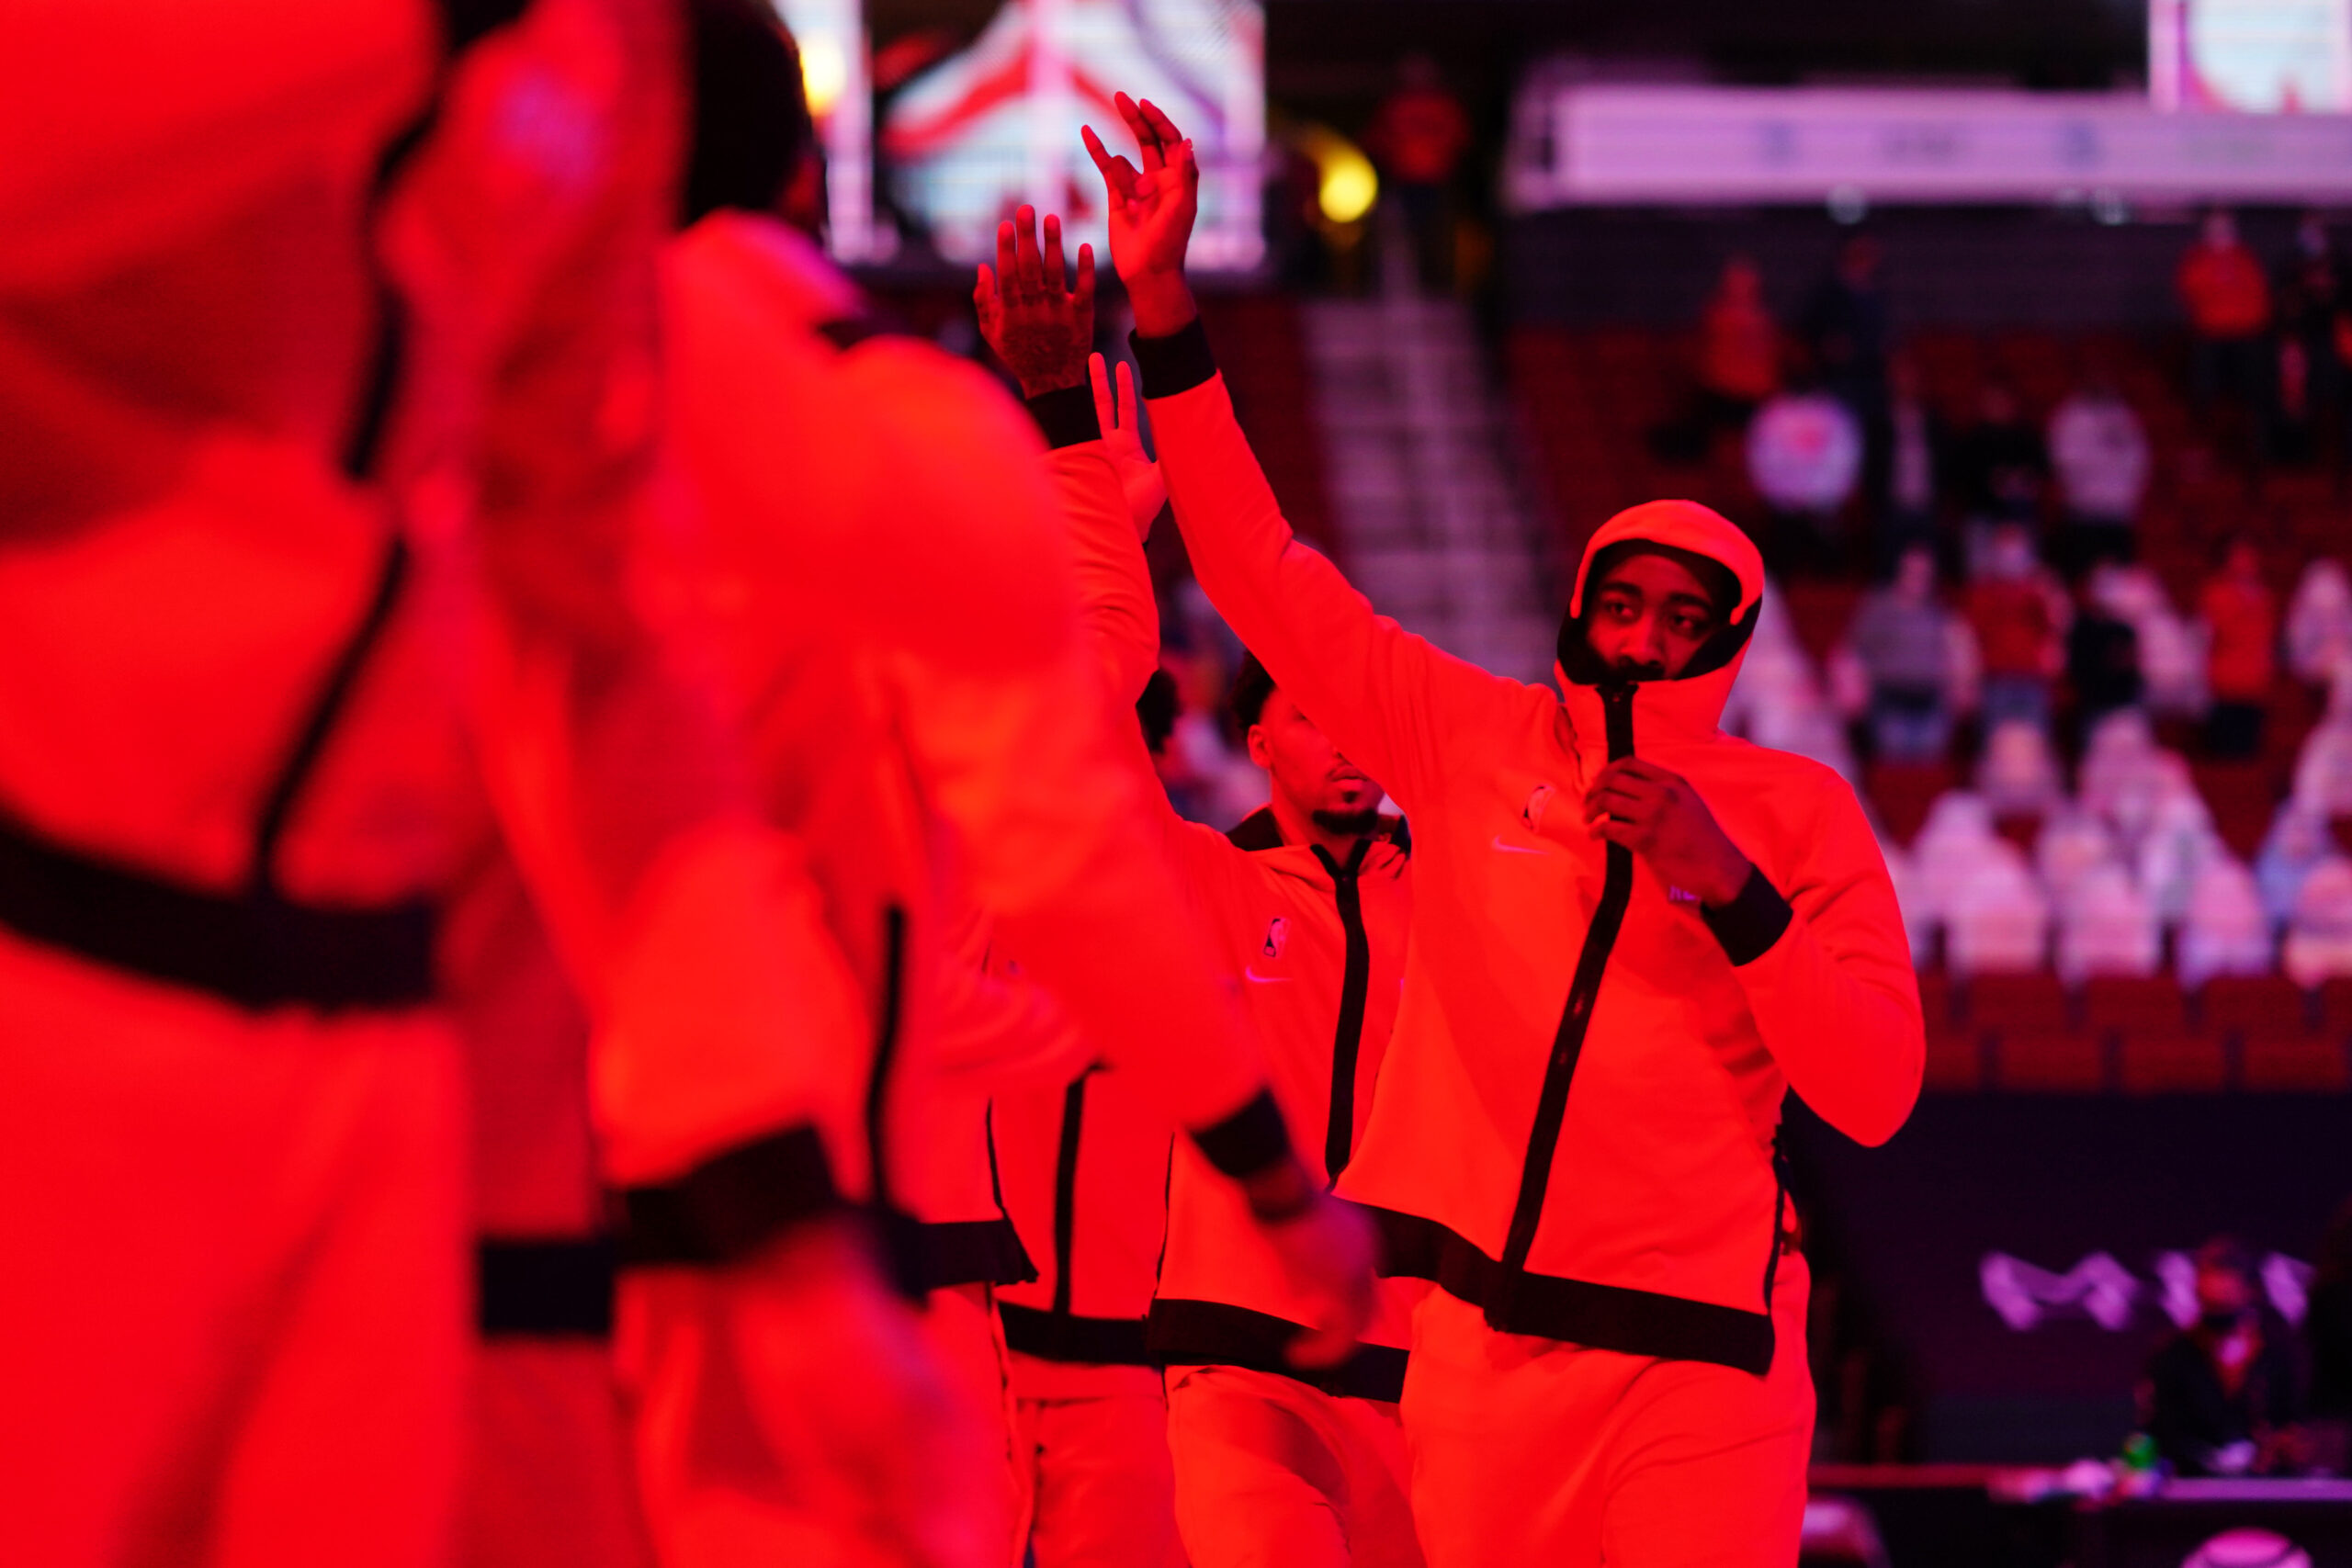 A timeline of James Harden's final 24 hours in Houston